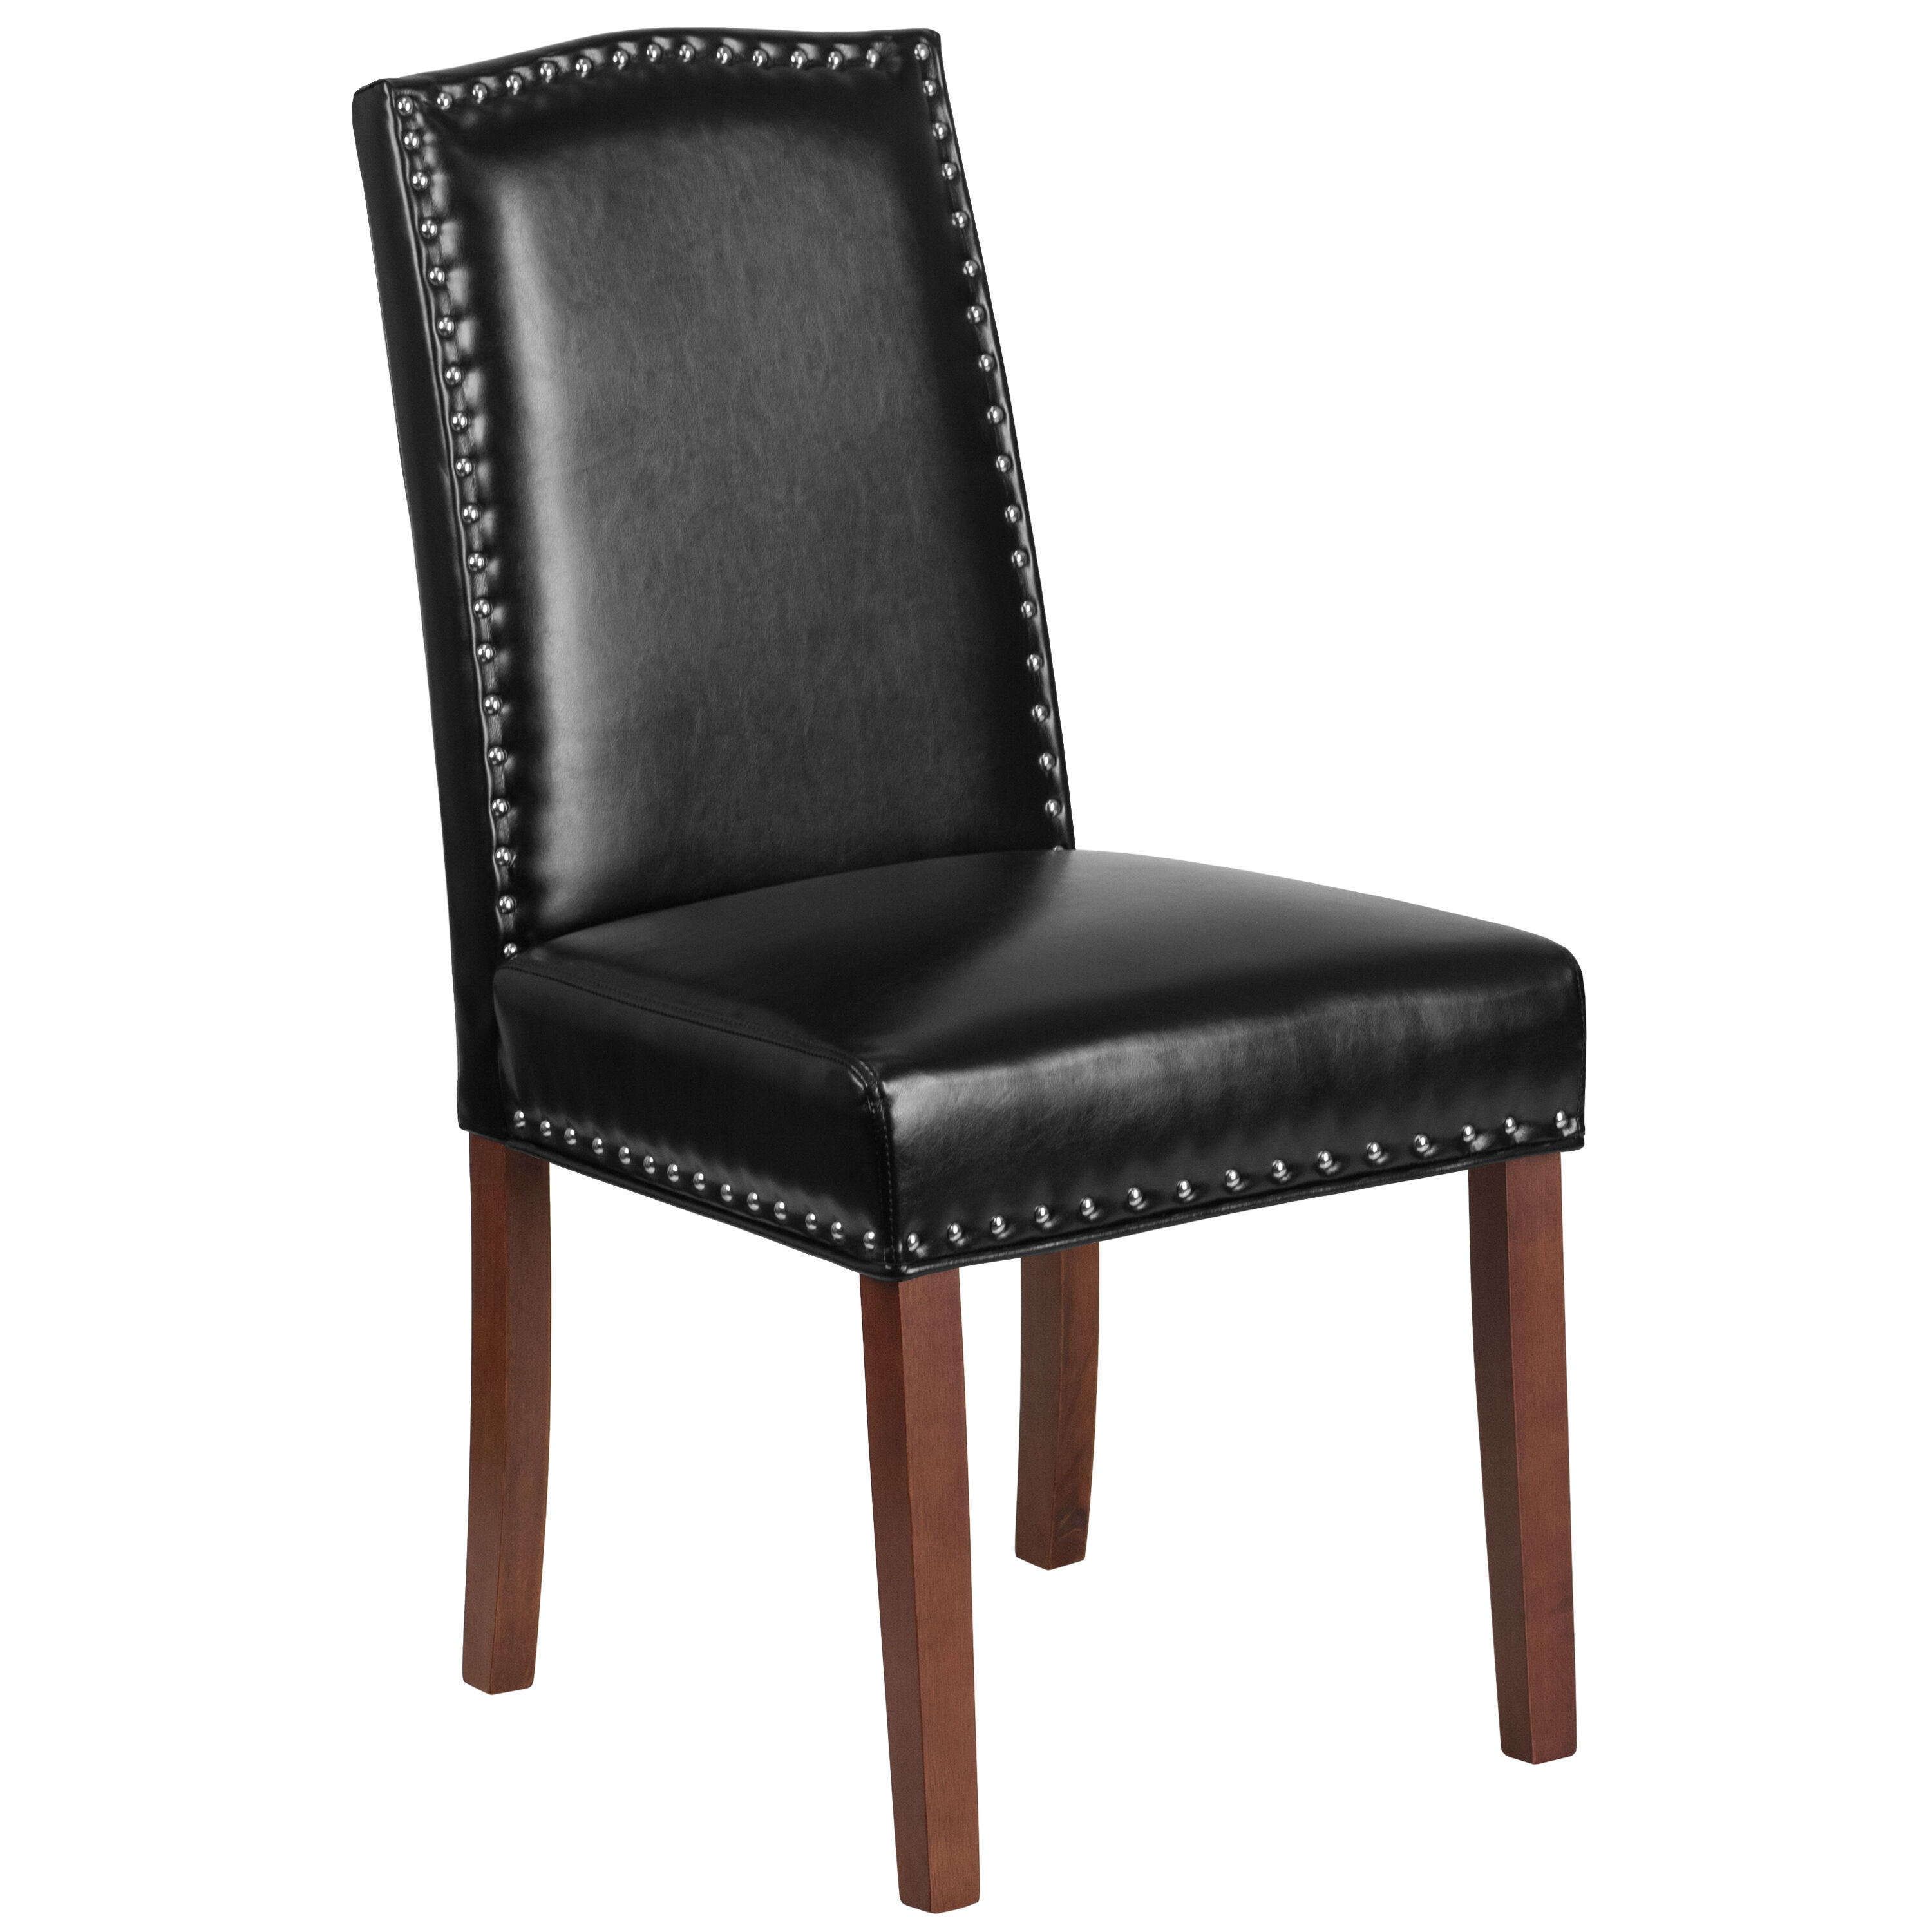 black parsons chair glider toys r us our hercules hampton hill series leather